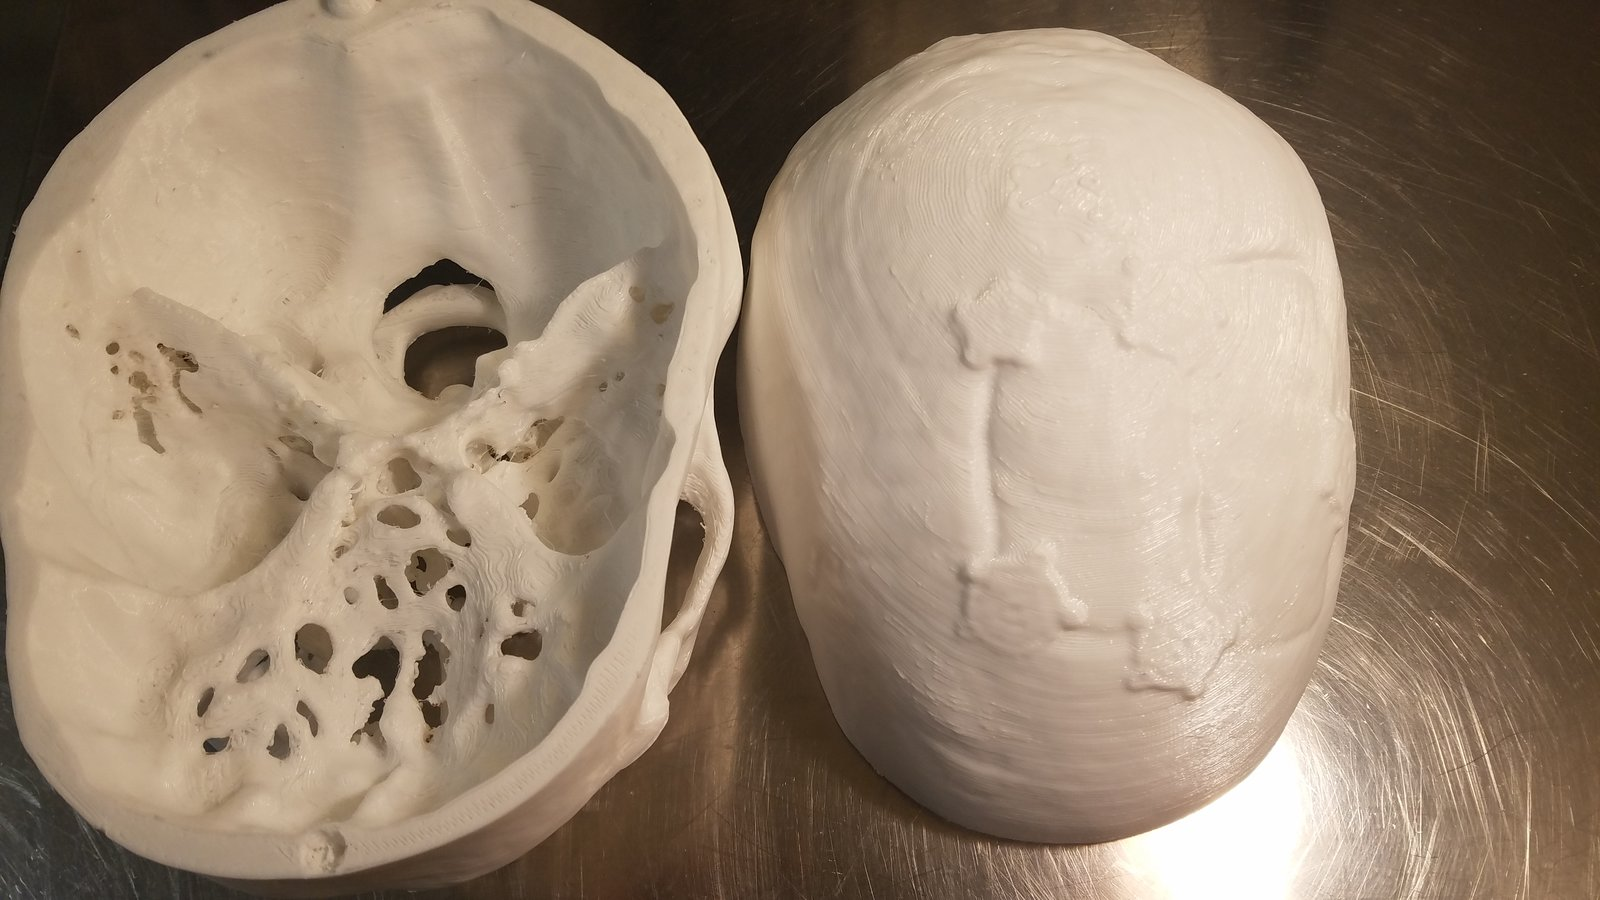 Skull 3D print showing carniotomy defect plus surgical plates